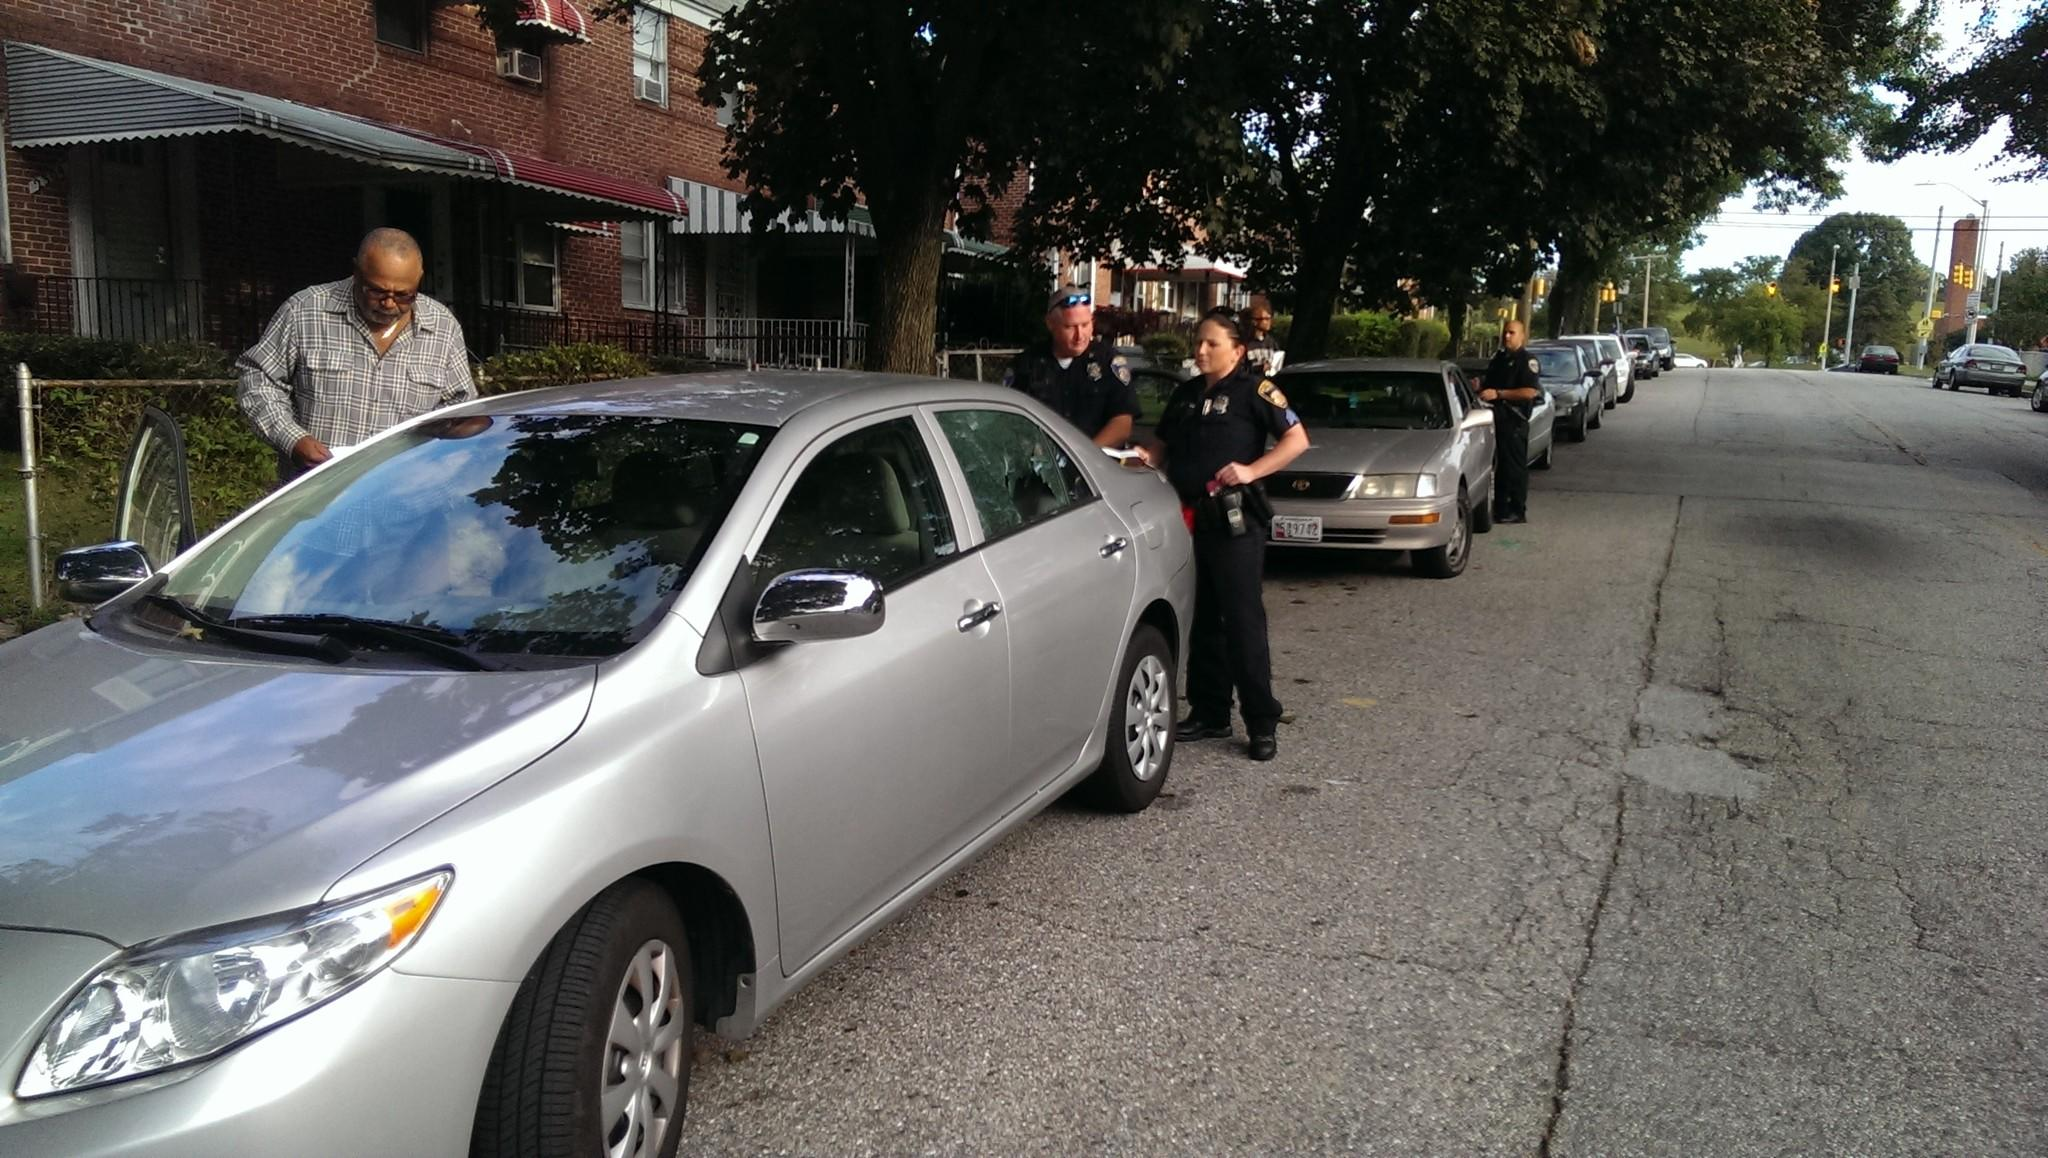 Police officers investigate a car with its window shot out in the 2200 block of N. Dukeland St. Around eight cars in the area were hit.